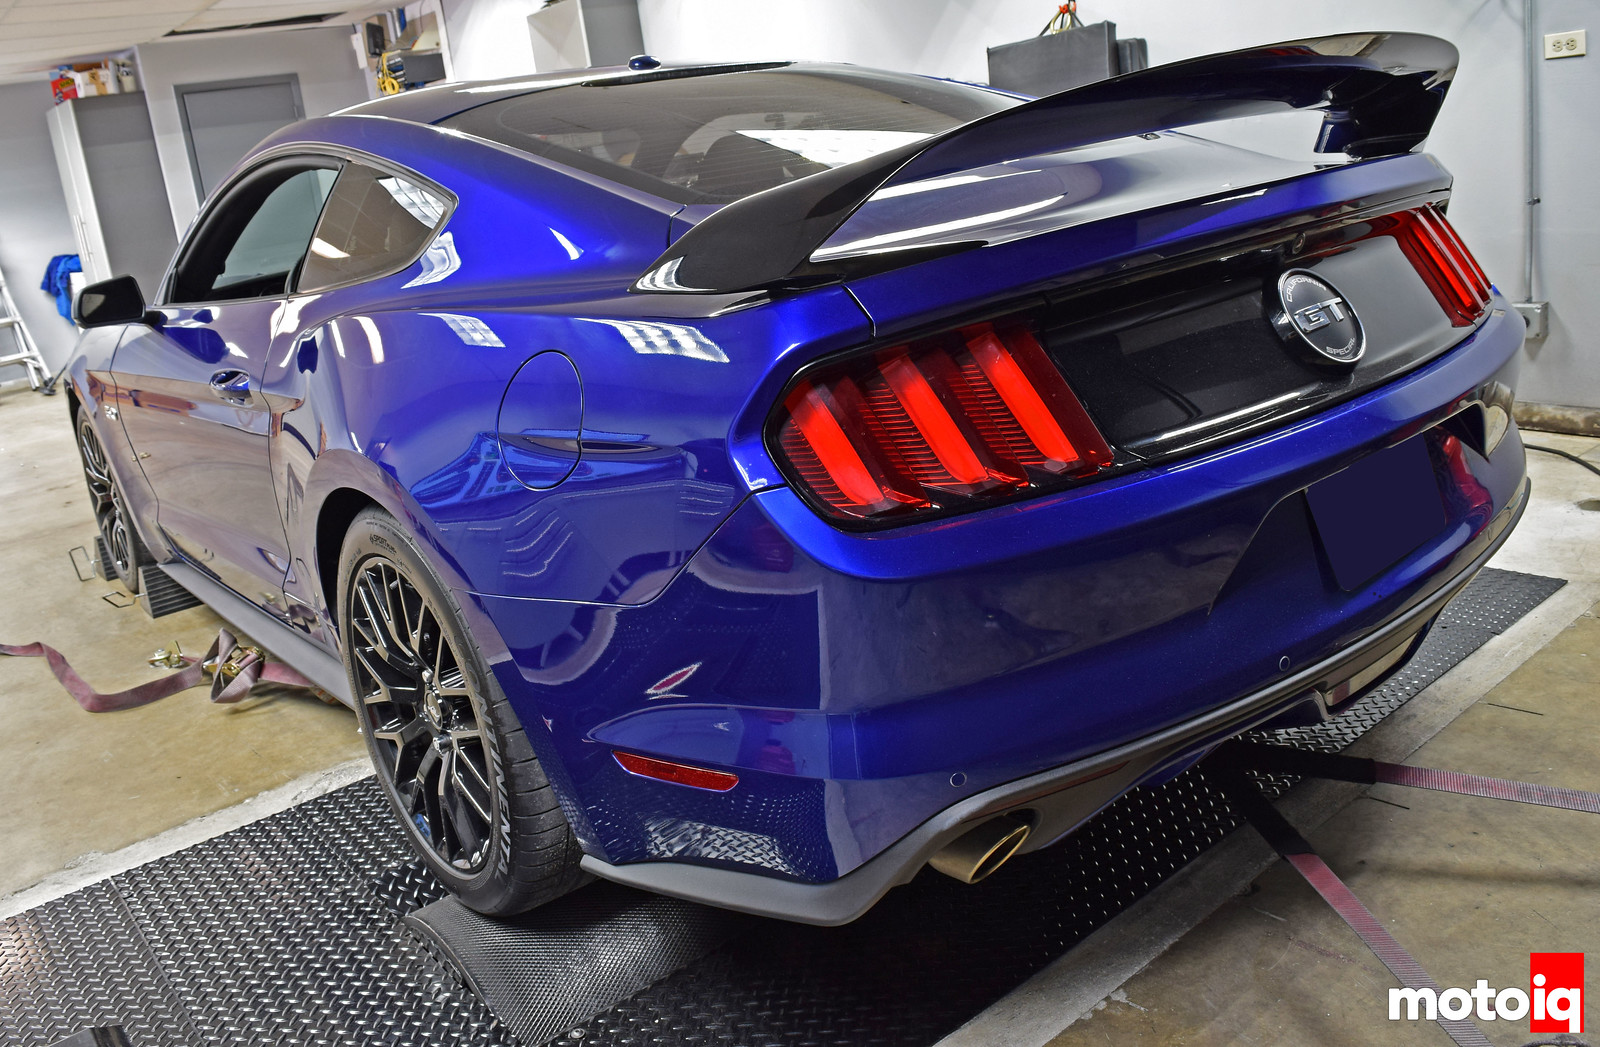 Palm Beach Dyno S550 Mustang GT Baseline